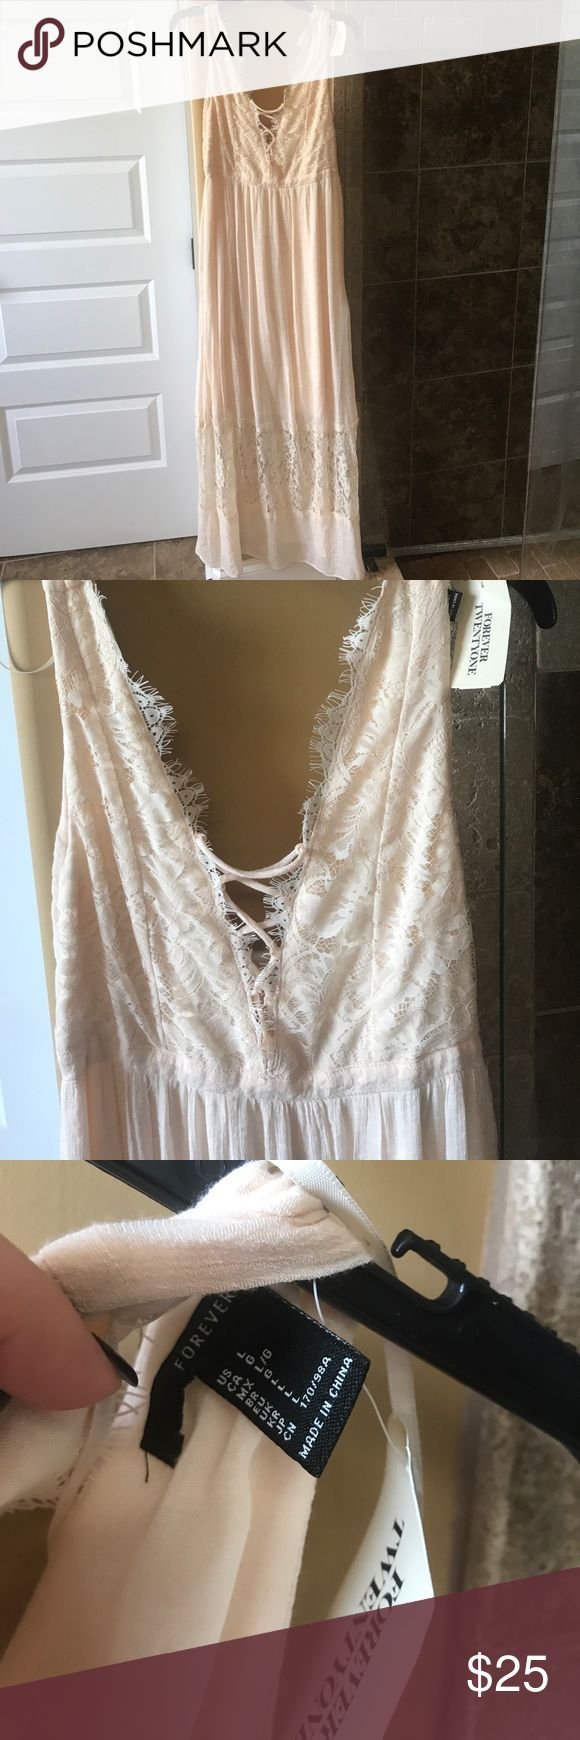 NWT forever 21 cream maxi dress Cute maxi dress! Great for summer. Zips on the side Forever 21 Dresses Maxi